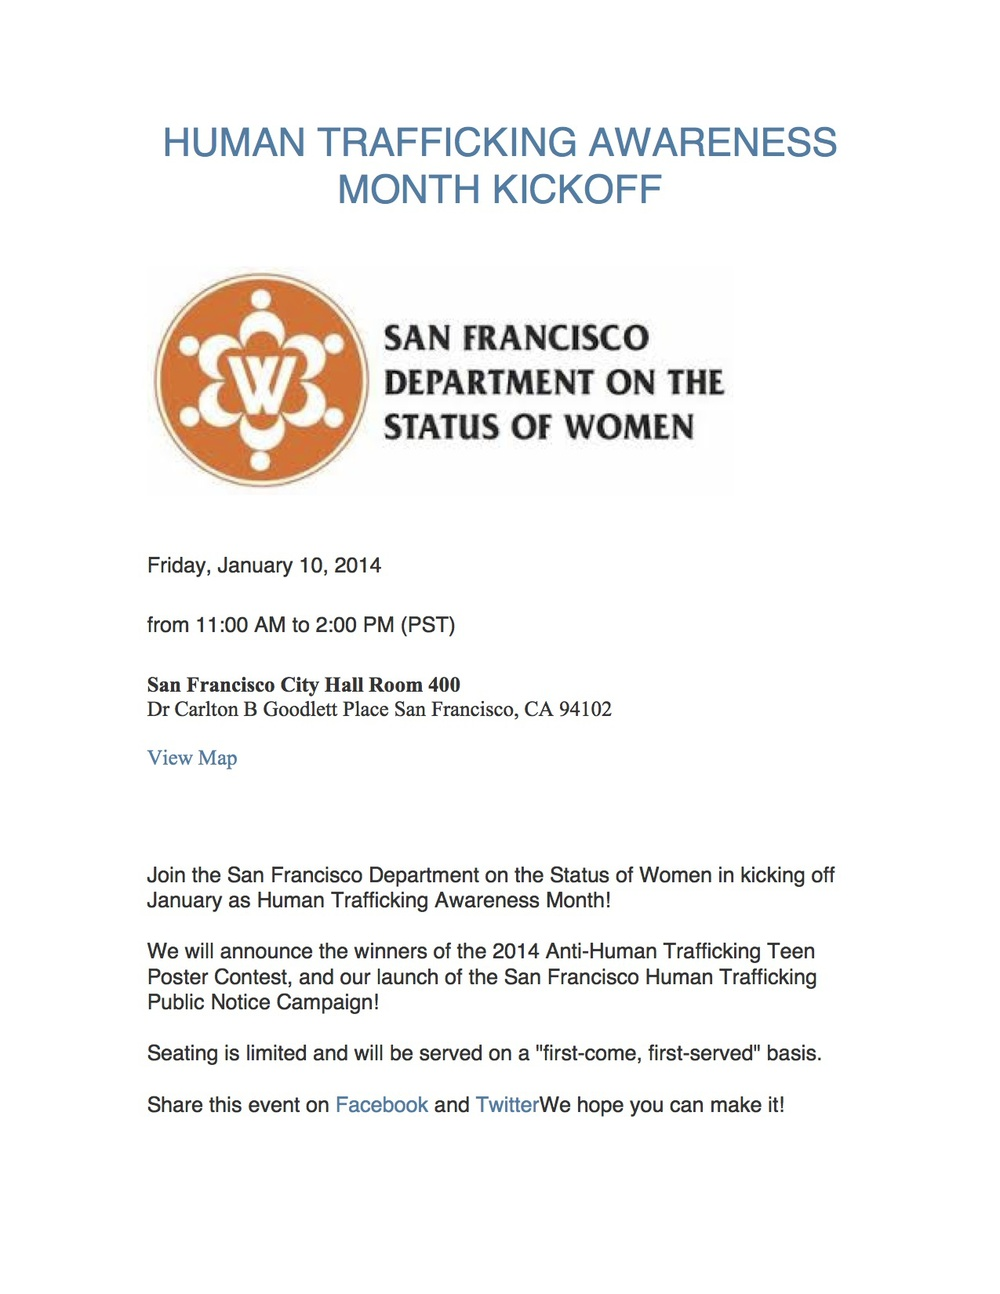 HUMAN TRAFFICKING AWARENESS MONTH KICKOFF copy.jpg